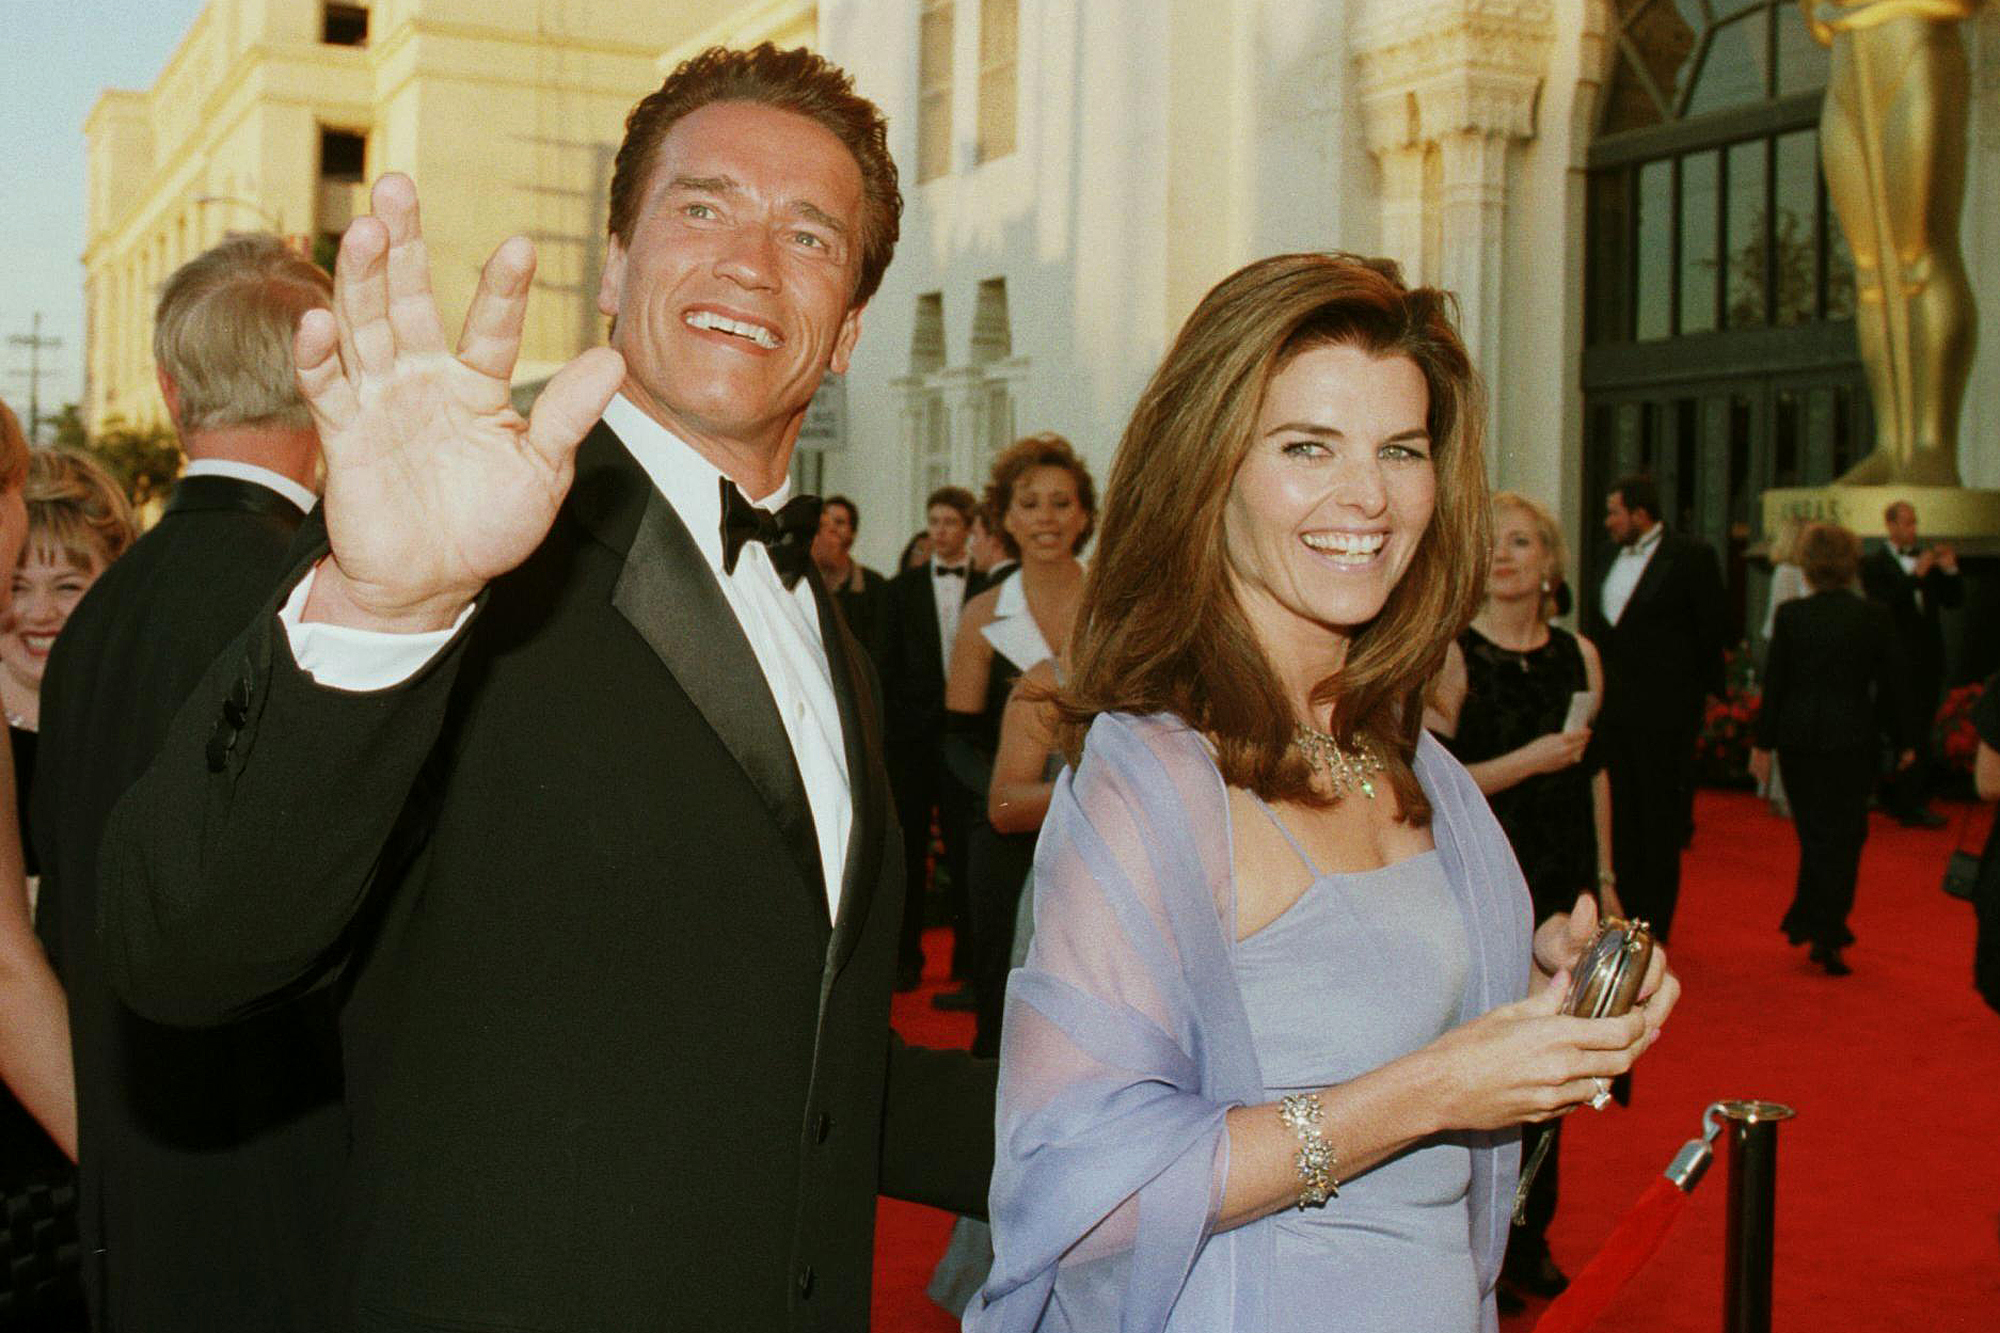 Actor Arnold Schwarzenegger (L) and his wife repor